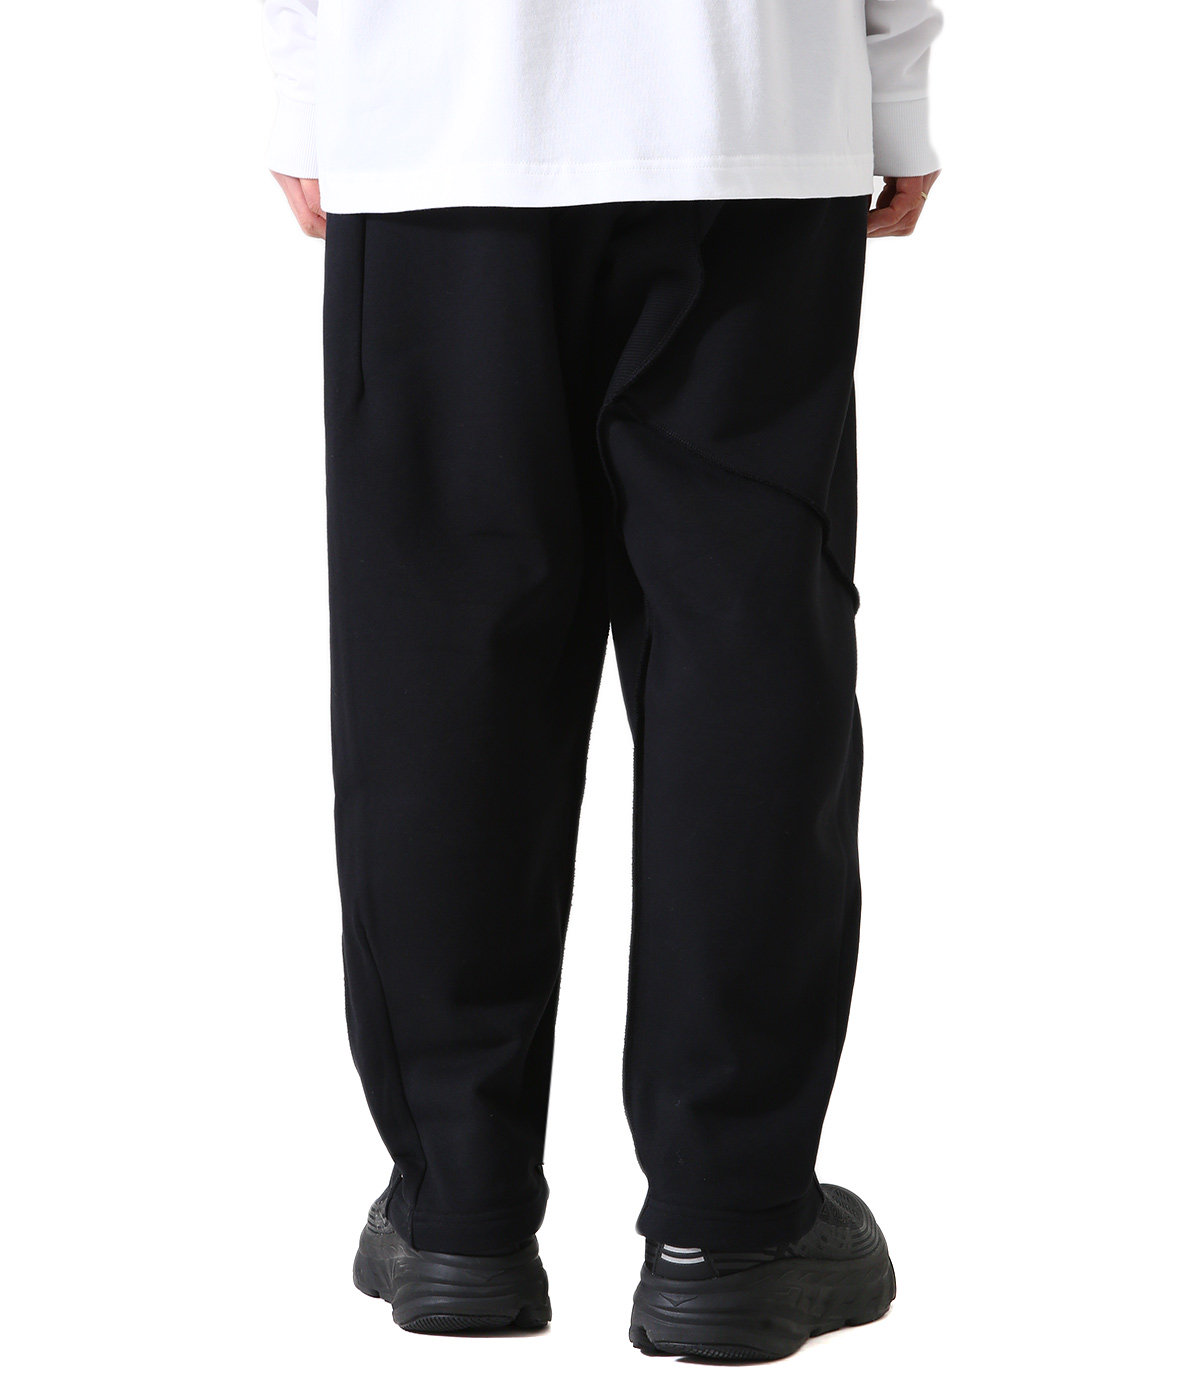 DISSECTION PANTS